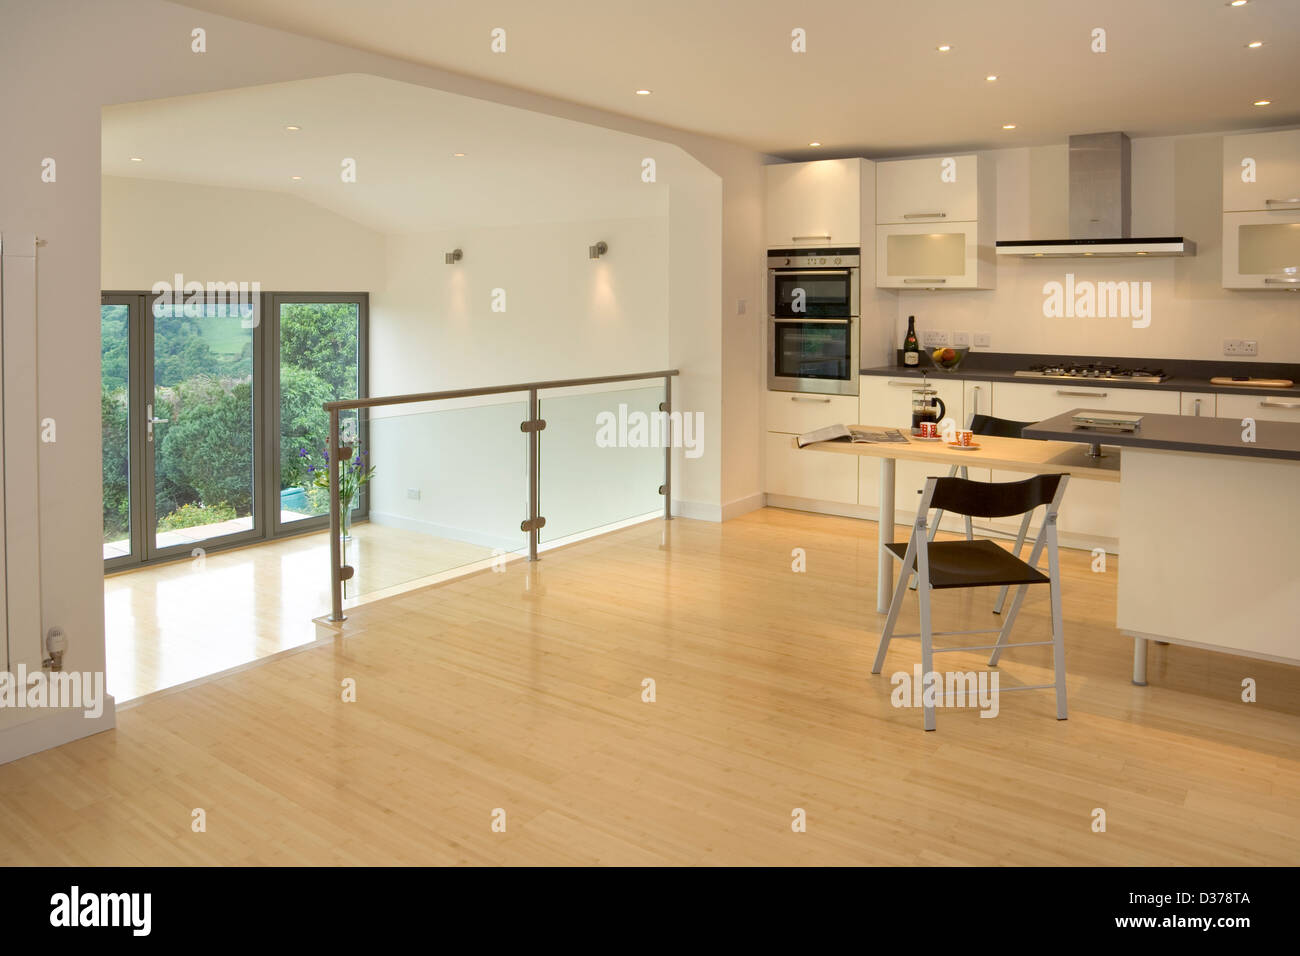 Brand new contemporary split level kitchen in a new house. - Stock Image